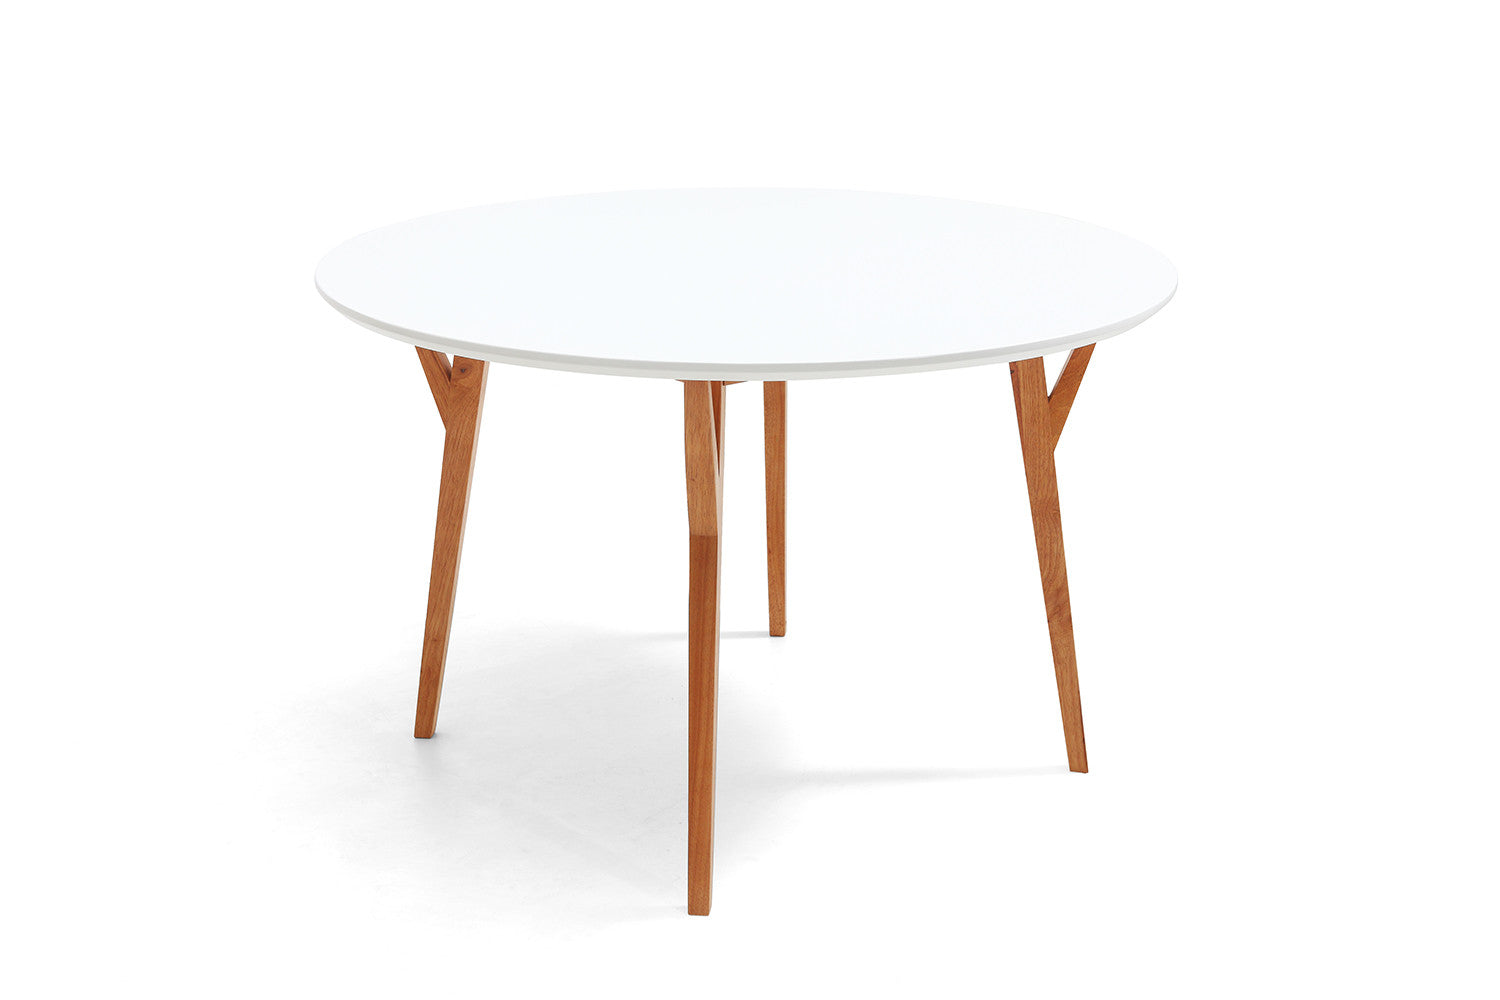 Table de salle manger ronde design scandinave moesa - Table salle a manger but ...